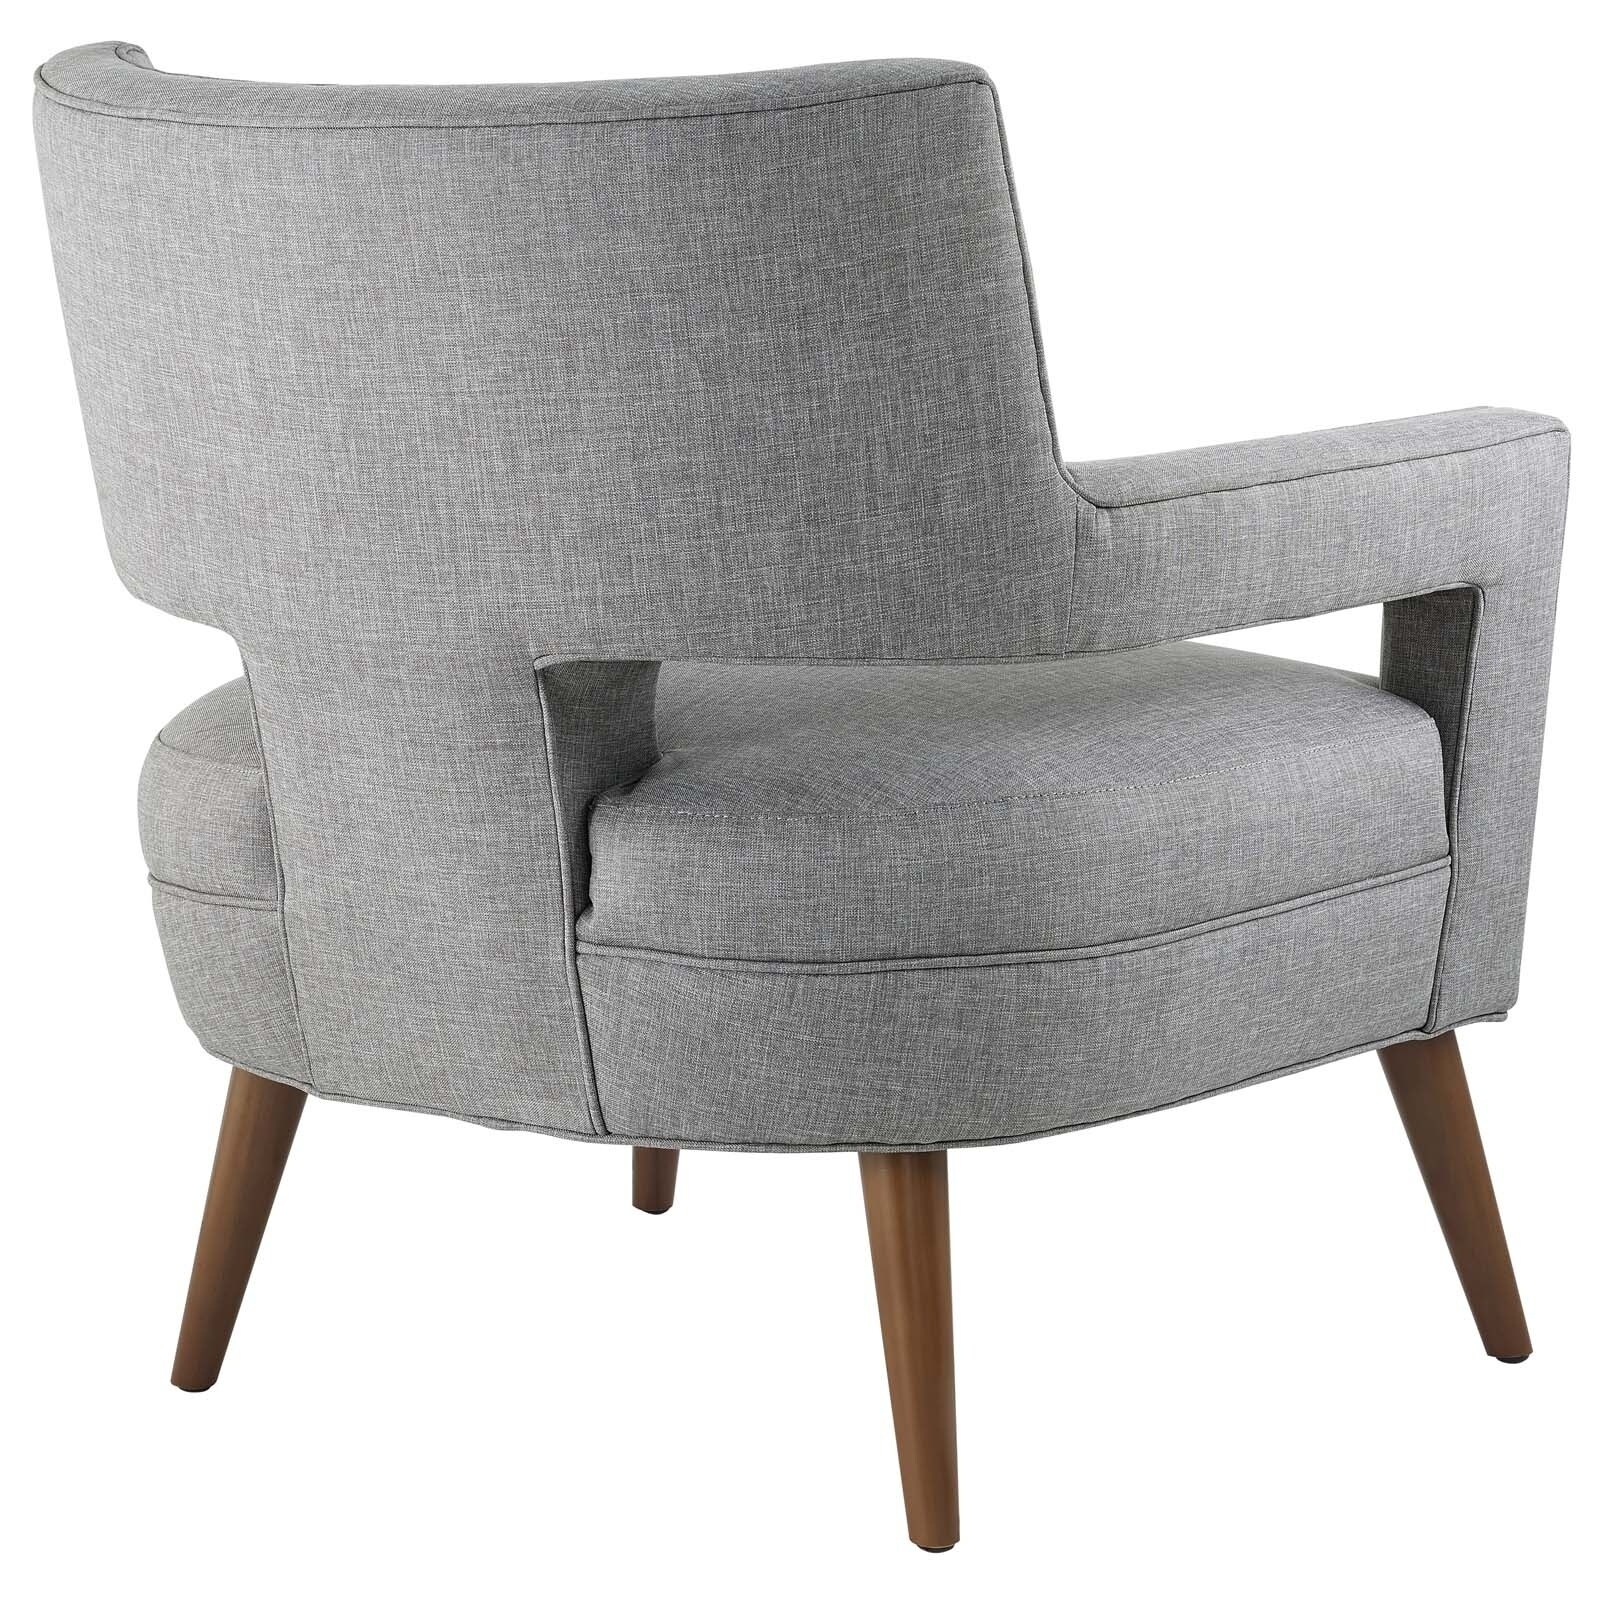 Shop Sheer Upholstered Fabric Armchair   On Sale   Free Shipping Today    Overstock.com   18521688